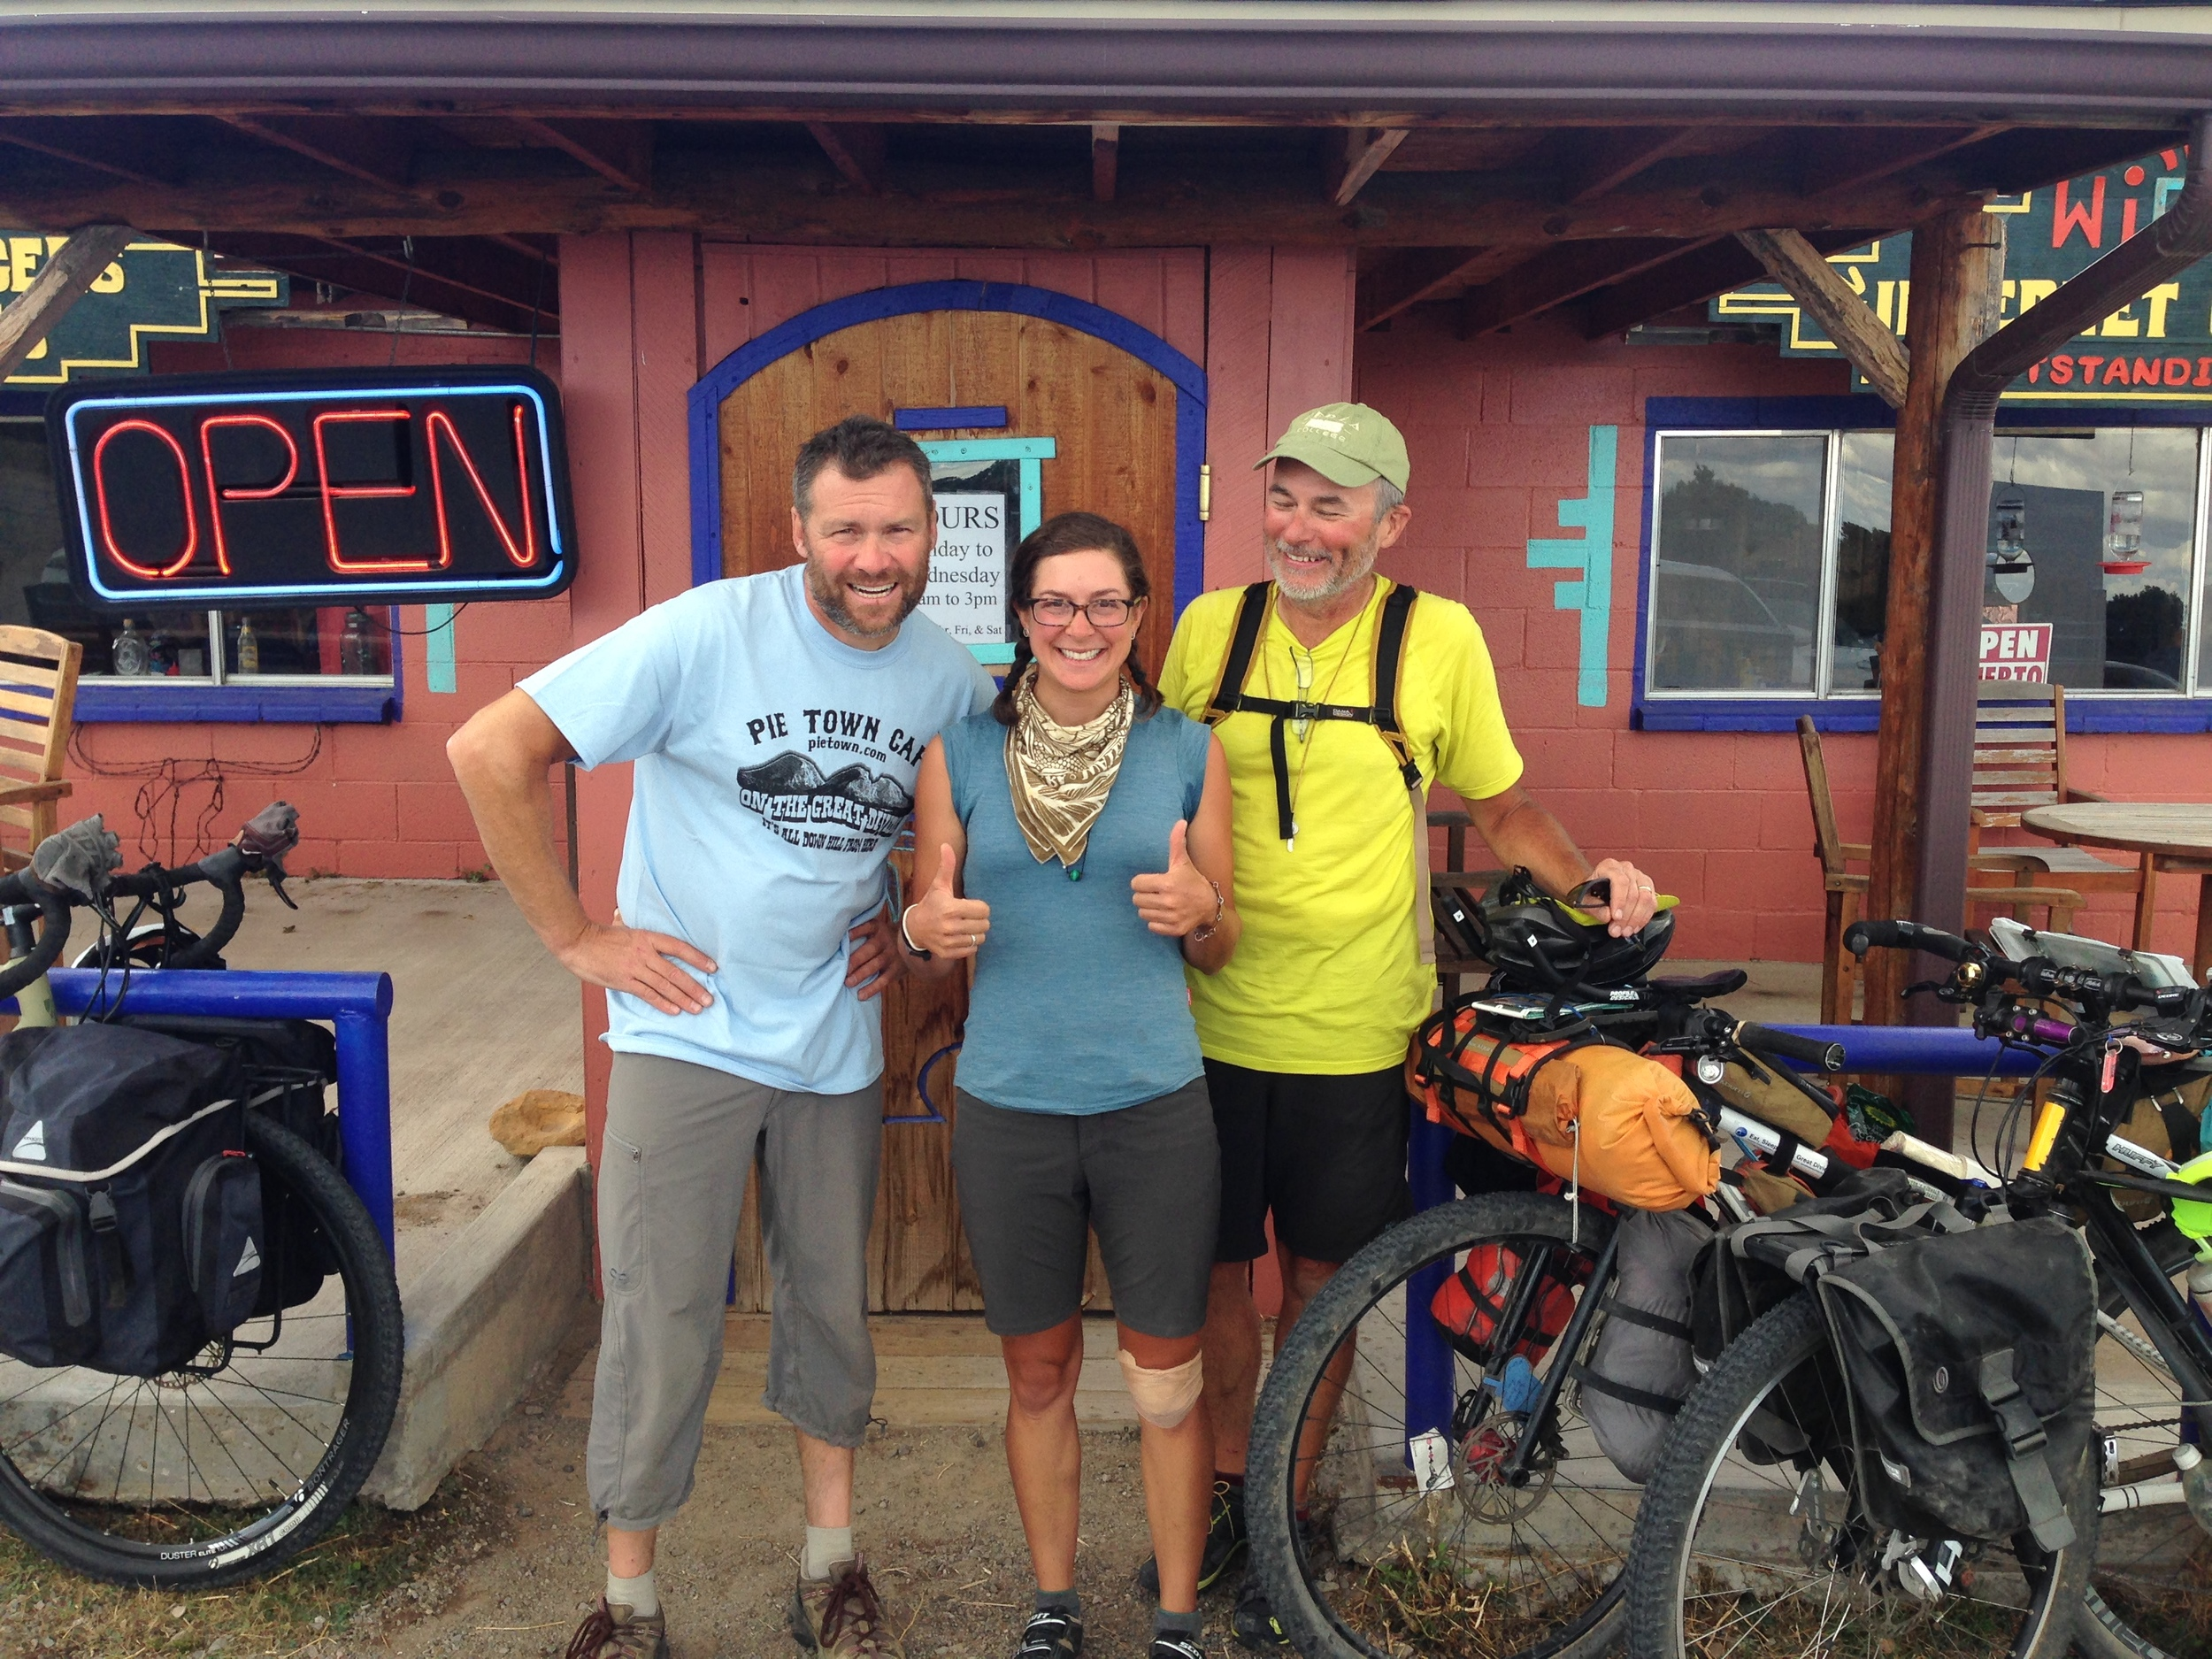 "Becoming friends with strangers on the trail is all part of the experience. ""Team Hi-Vis""... two of my favorite trail pals. Here all smiles having just eaten pie at Pie Town."